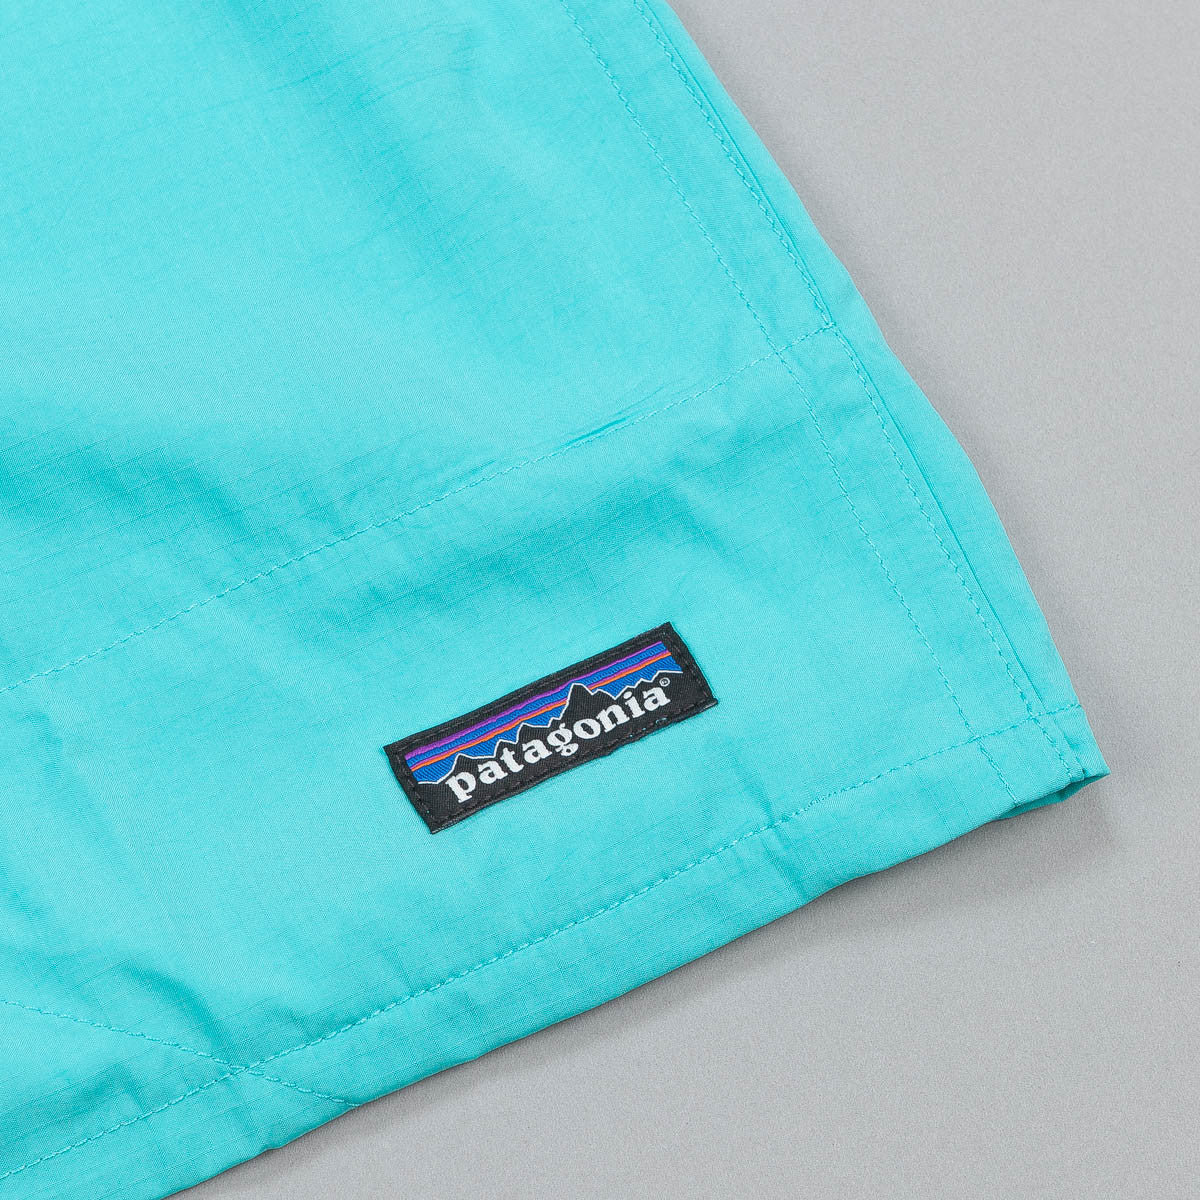 Patagonia Baggies Lights Shorts - Howling Turquoise